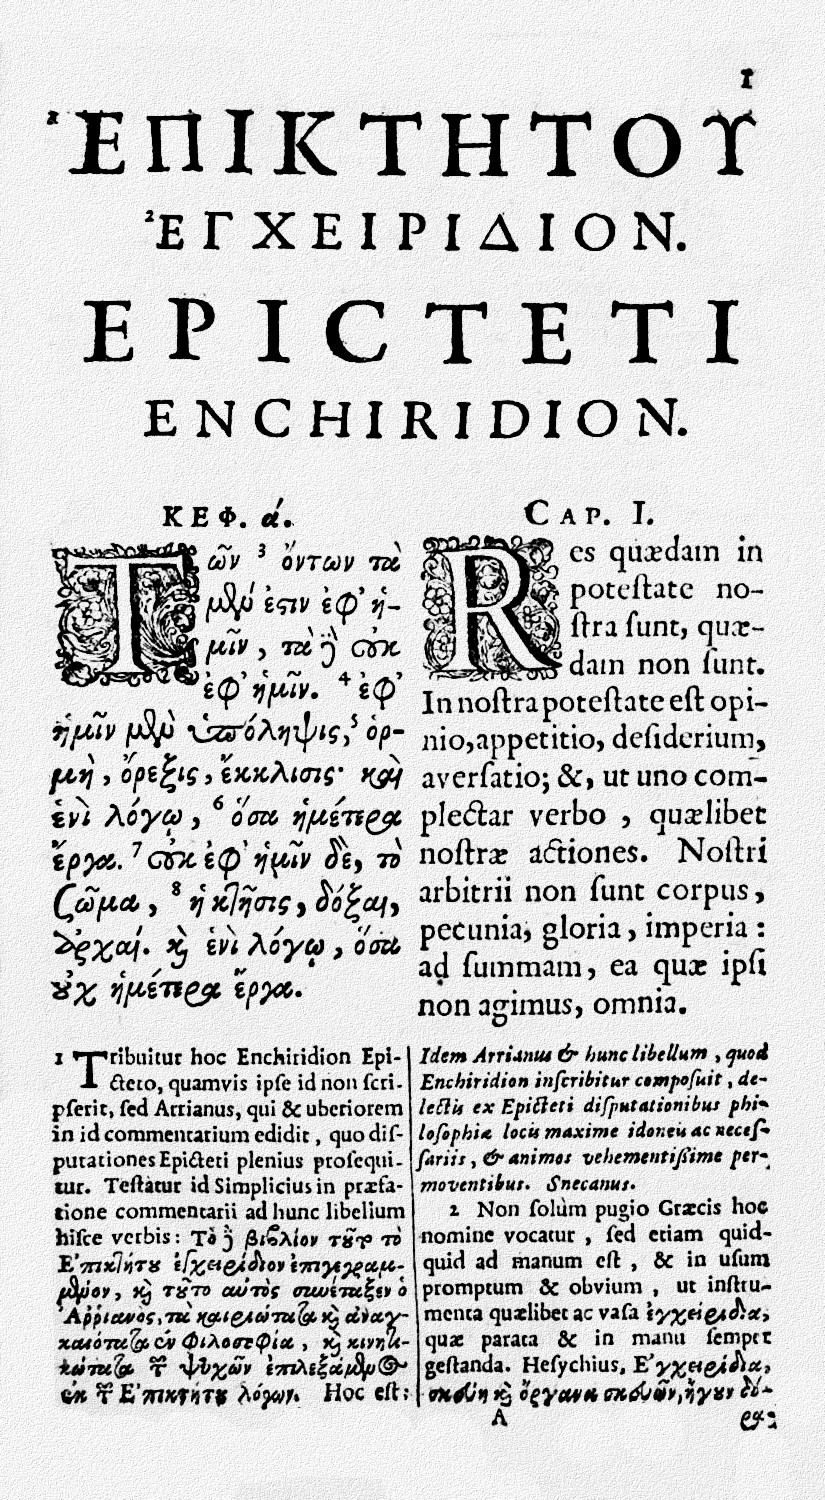 an analysis of the philosophical work the enchiridion by epictetus Stoicism deals with three major areas logic, natural philosophy (physics), and ethics epictetus focused his teachings mostly on ethics epictetus himself apparently did not write, but one of his students, the historian arrian, wrote two works, enchiridion (handbook) and the discourses, based on notes that he.